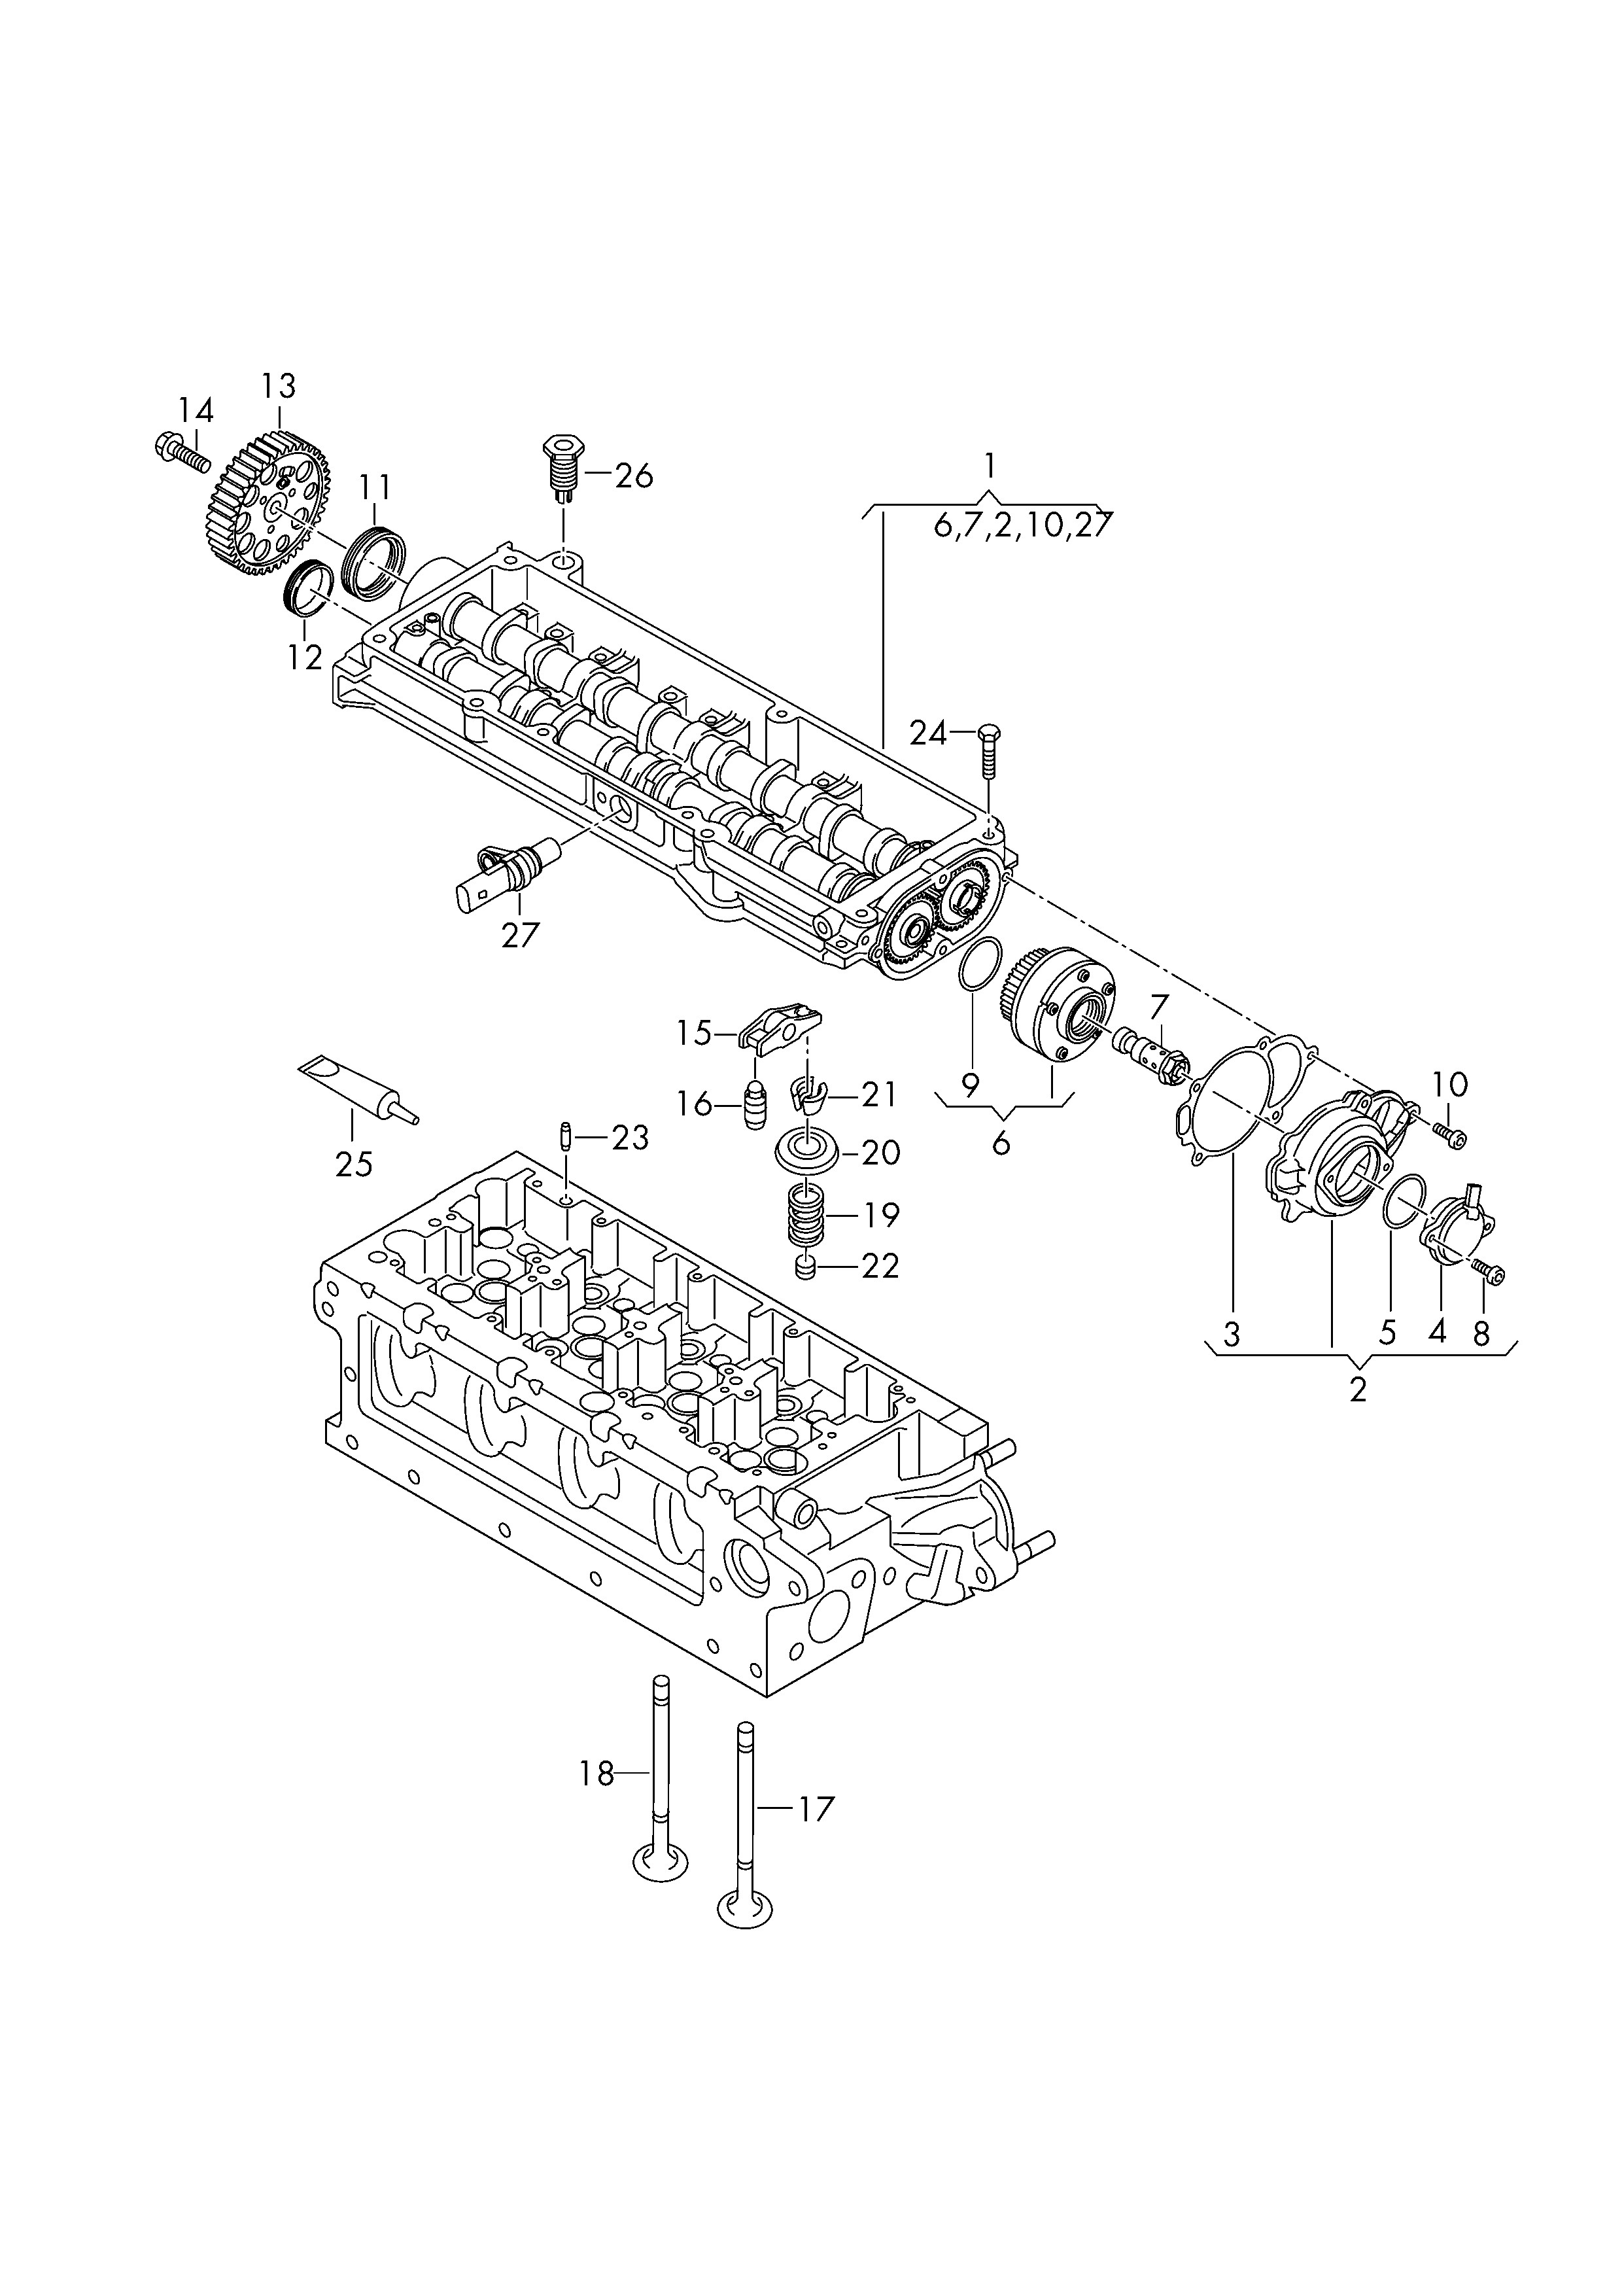 Camshaft Parts Diagram Volkswagen Passat Variant 2015 2017 Camshaft Adjuster Unit Of Camshaft Parts Diagram